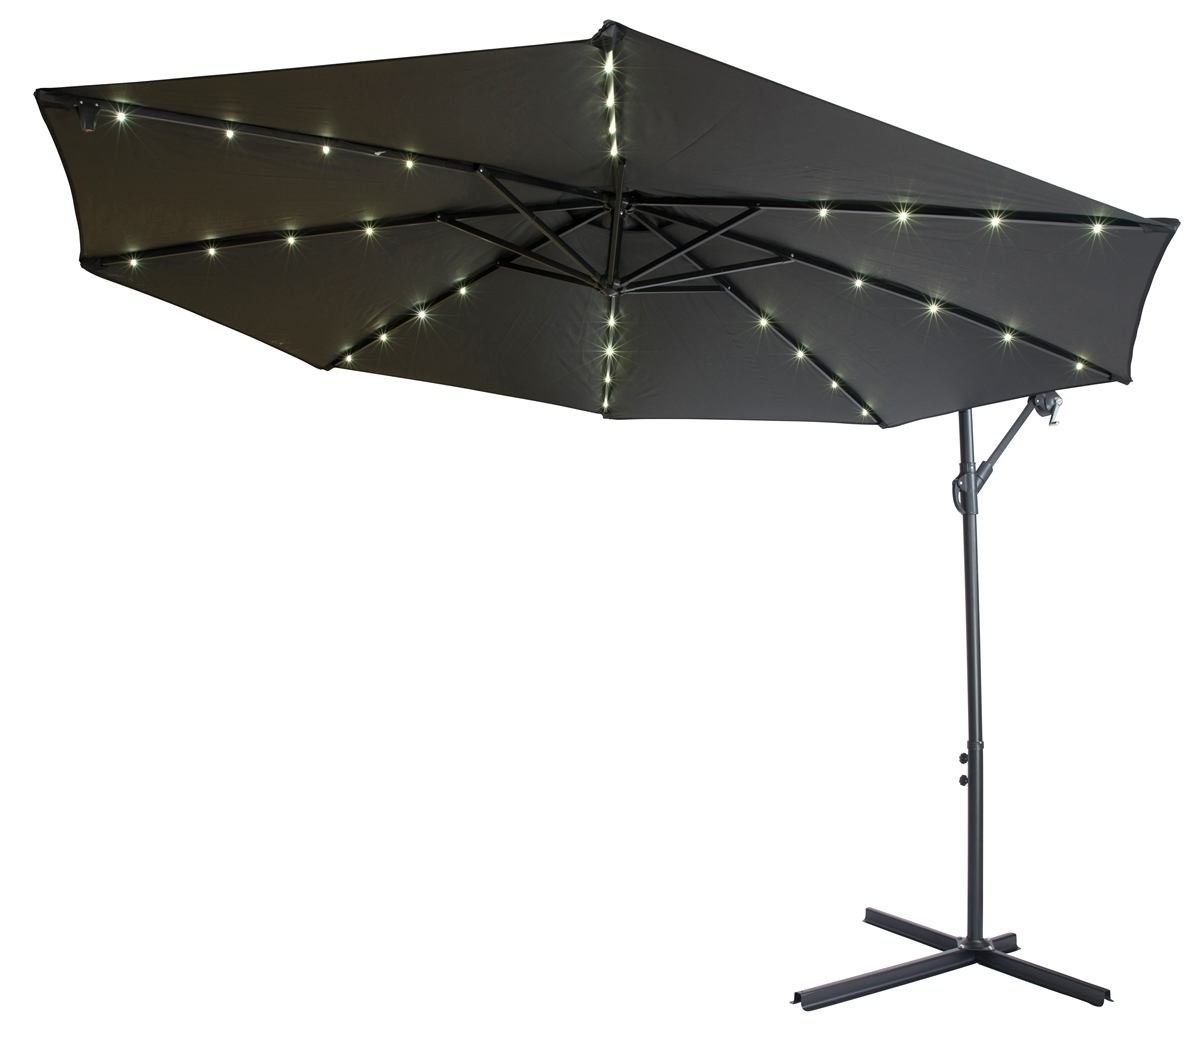 Black Patio Umbrella With Solar Lights 10 Deluxe Polyester Fset With Regard To Most Popular Sunbrella Patio Umbrellas With Solar Lights (View 3 of 20)